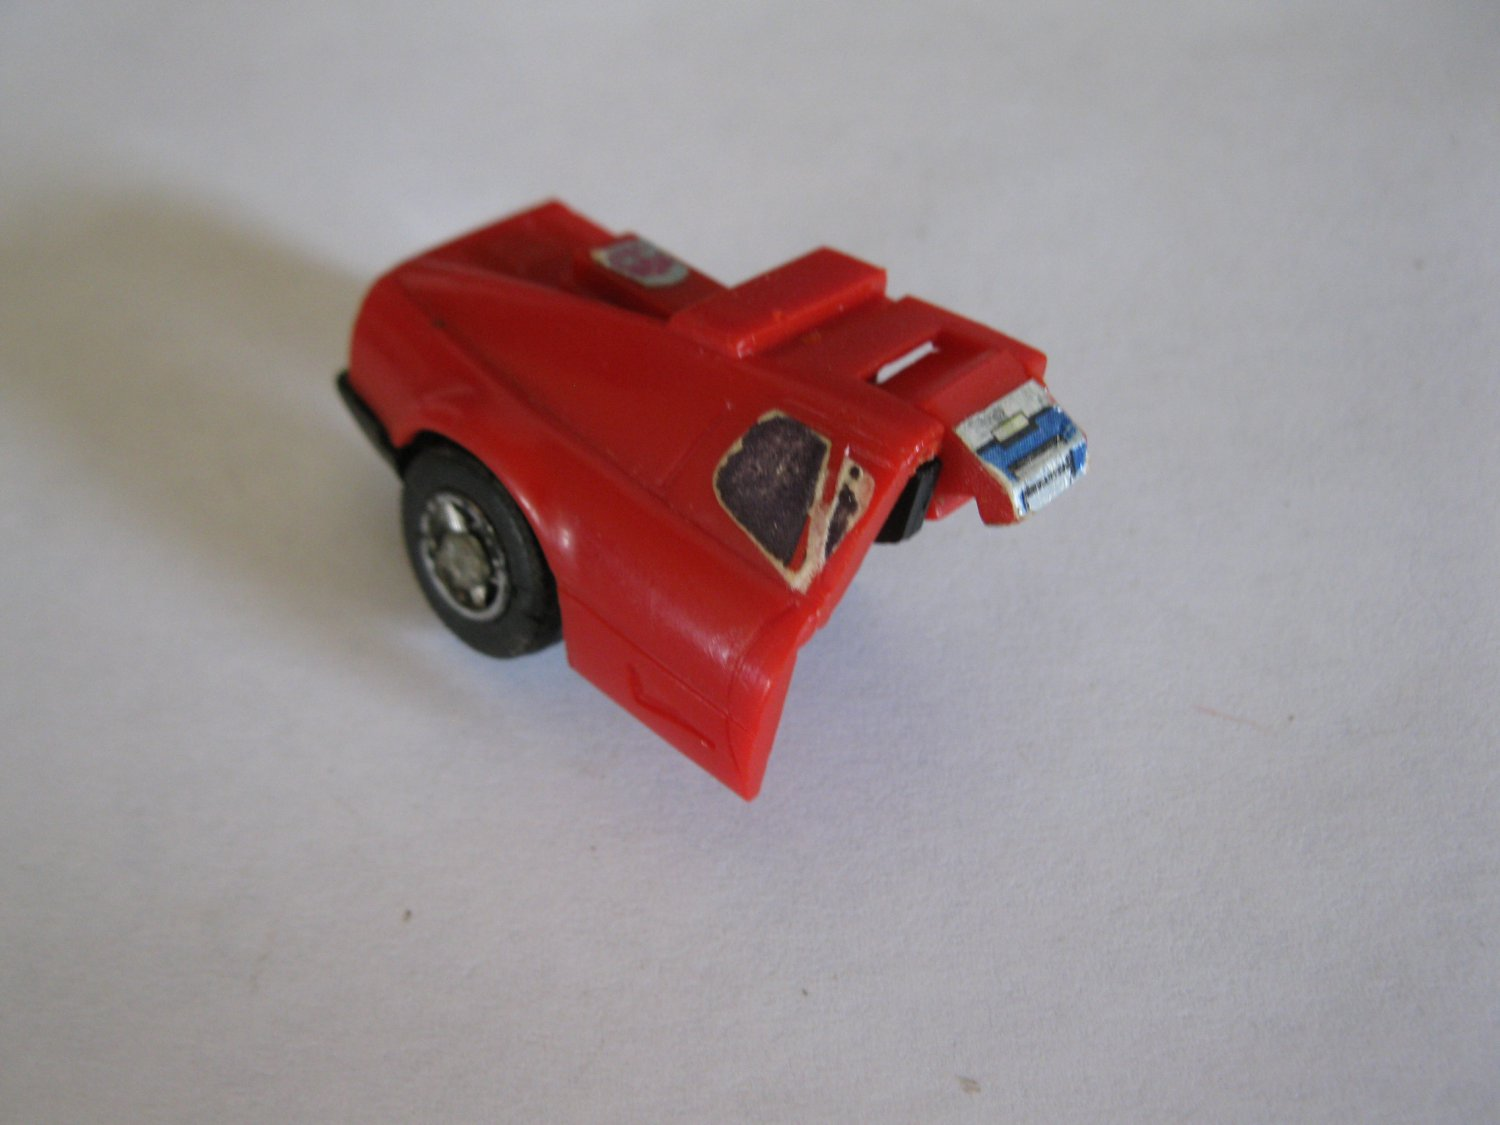 G1 Transformers Action figure part: 1984 Overdrive - Right Rear Quarter Panel W/ Wheel